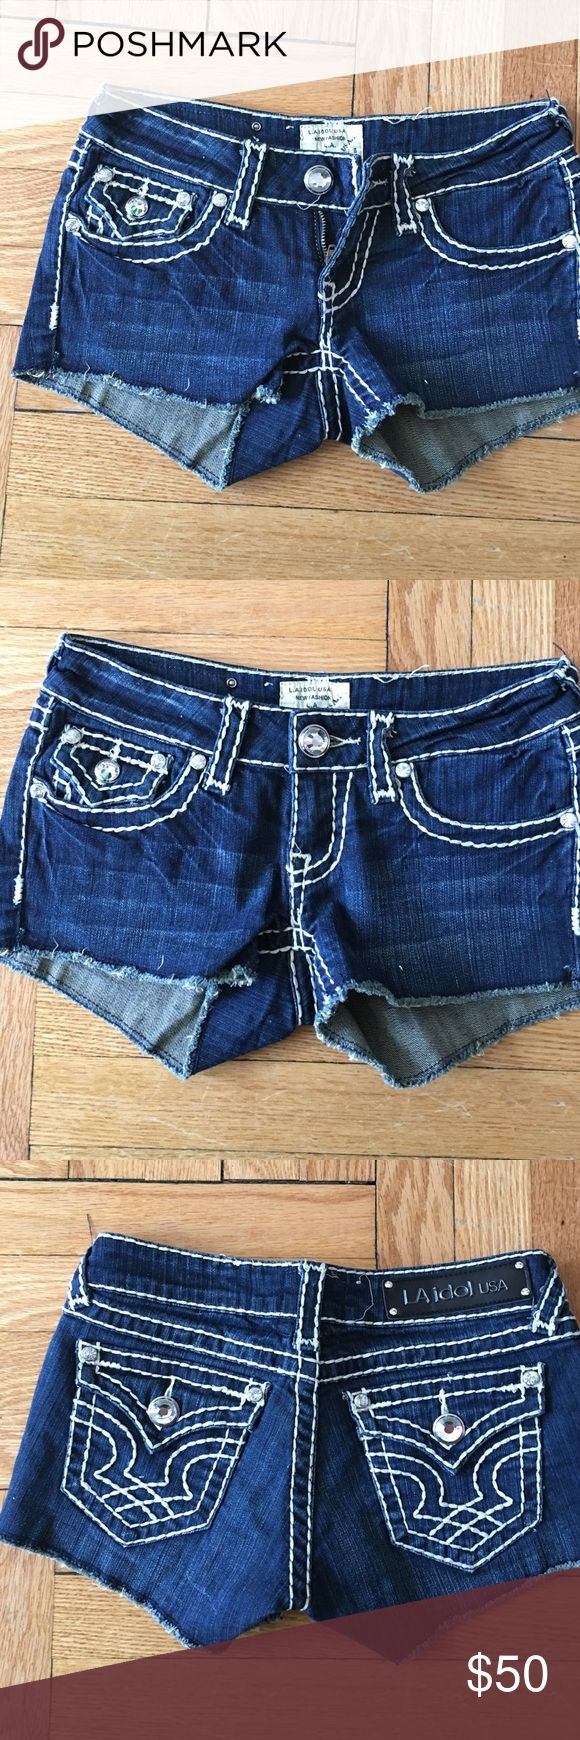 ⏳woman's shirt shorts brand new Never worn and expensive pair of shorts  BRAND NEW never worn la idol usa Shorts Jean Shorts